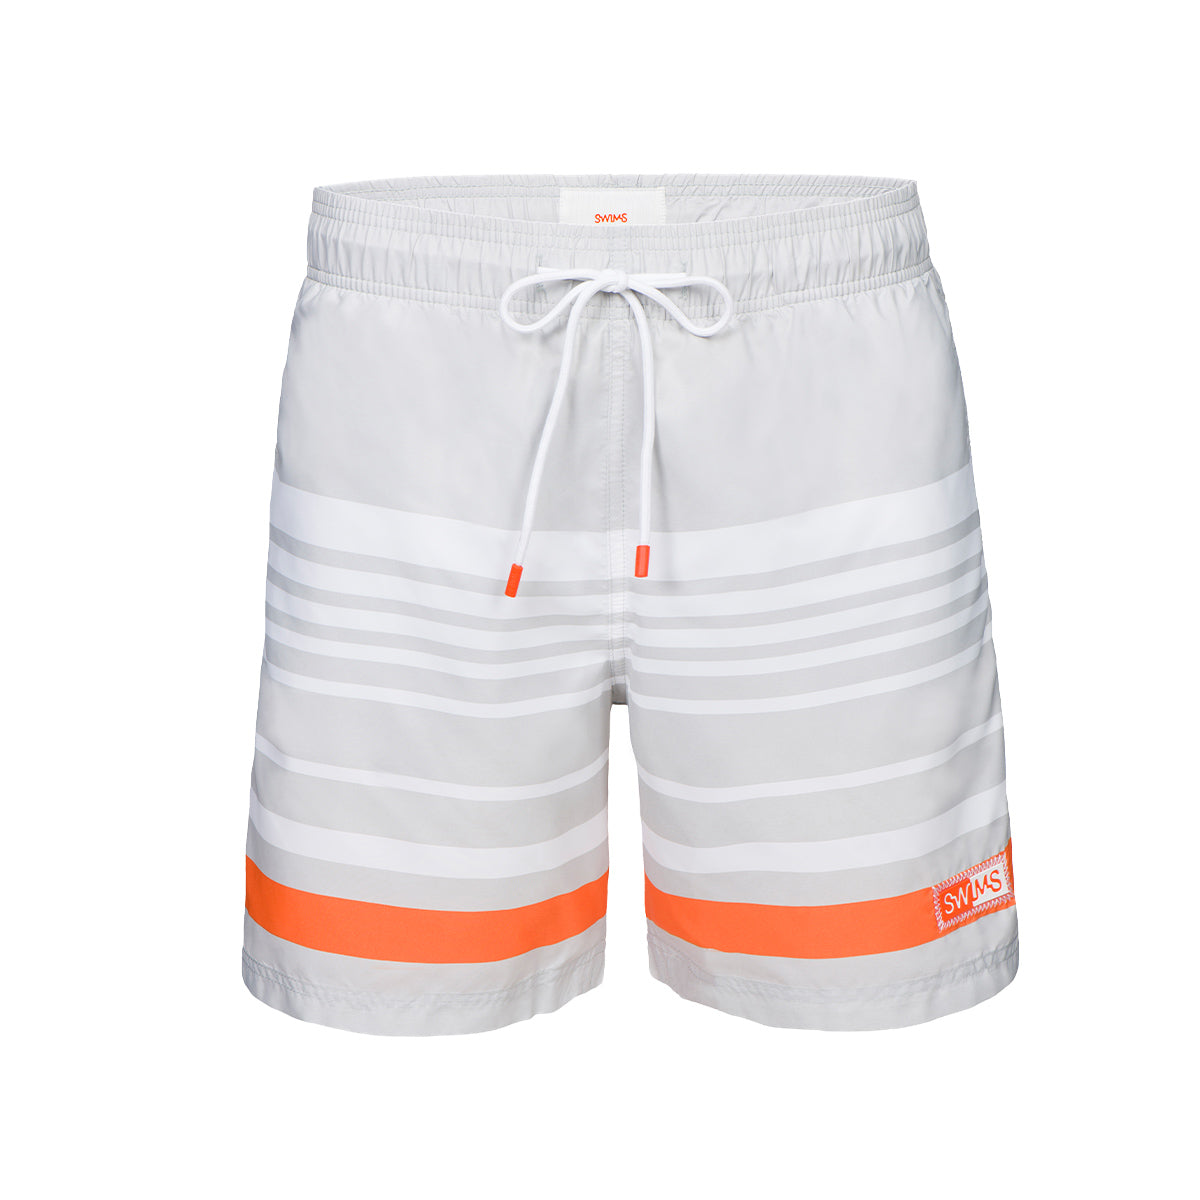 Lucea Logo Bathing Shorts - background::white,variant::grey